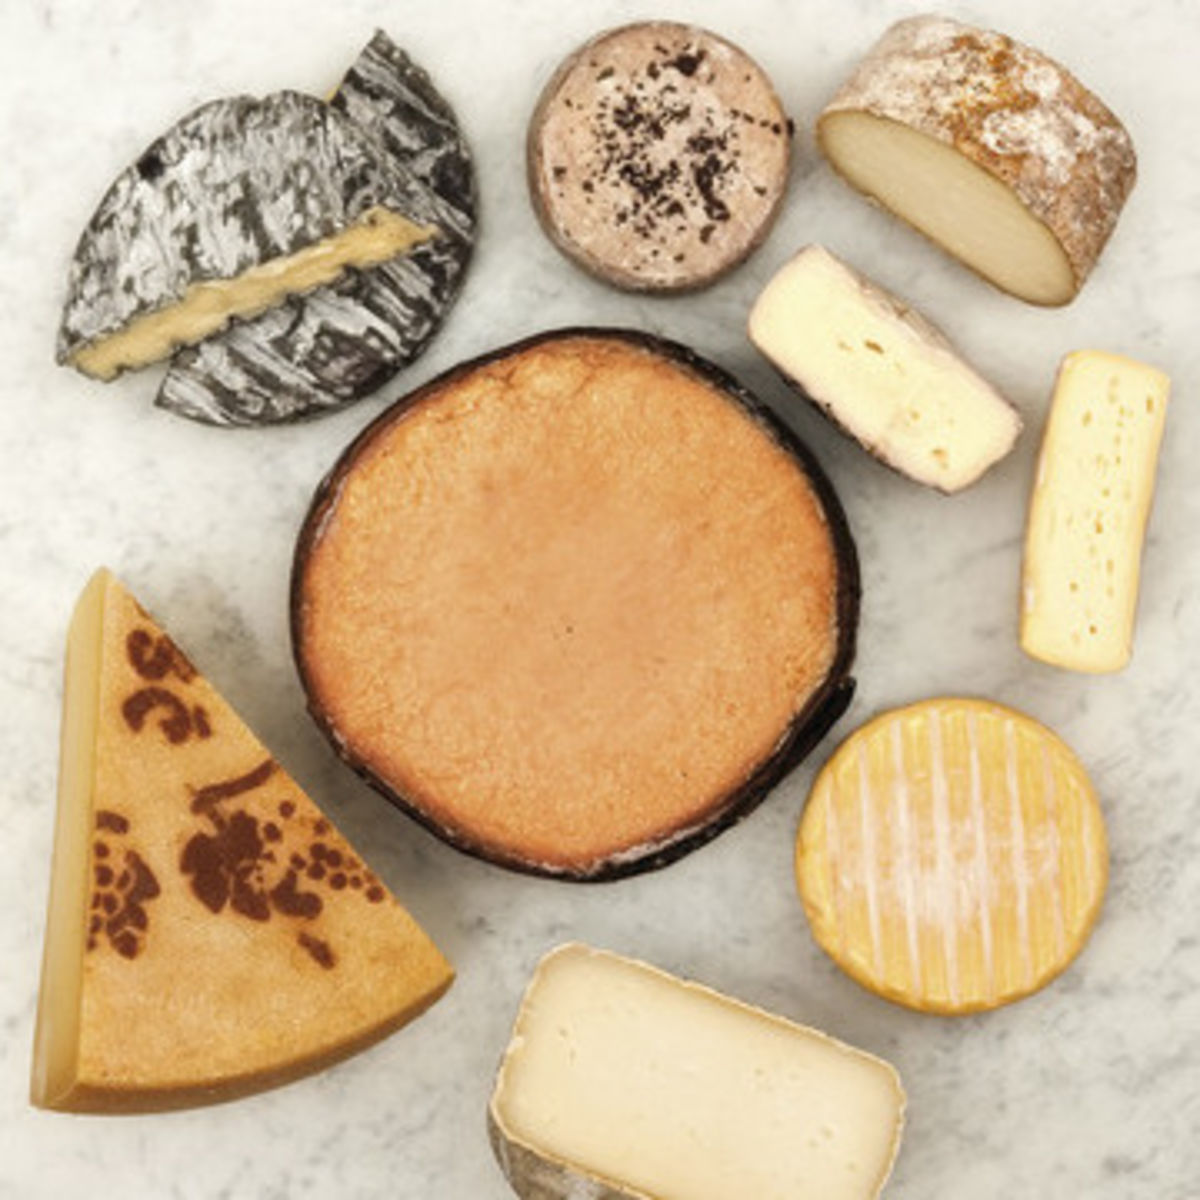 The picture shows several kinds of refined cheese.